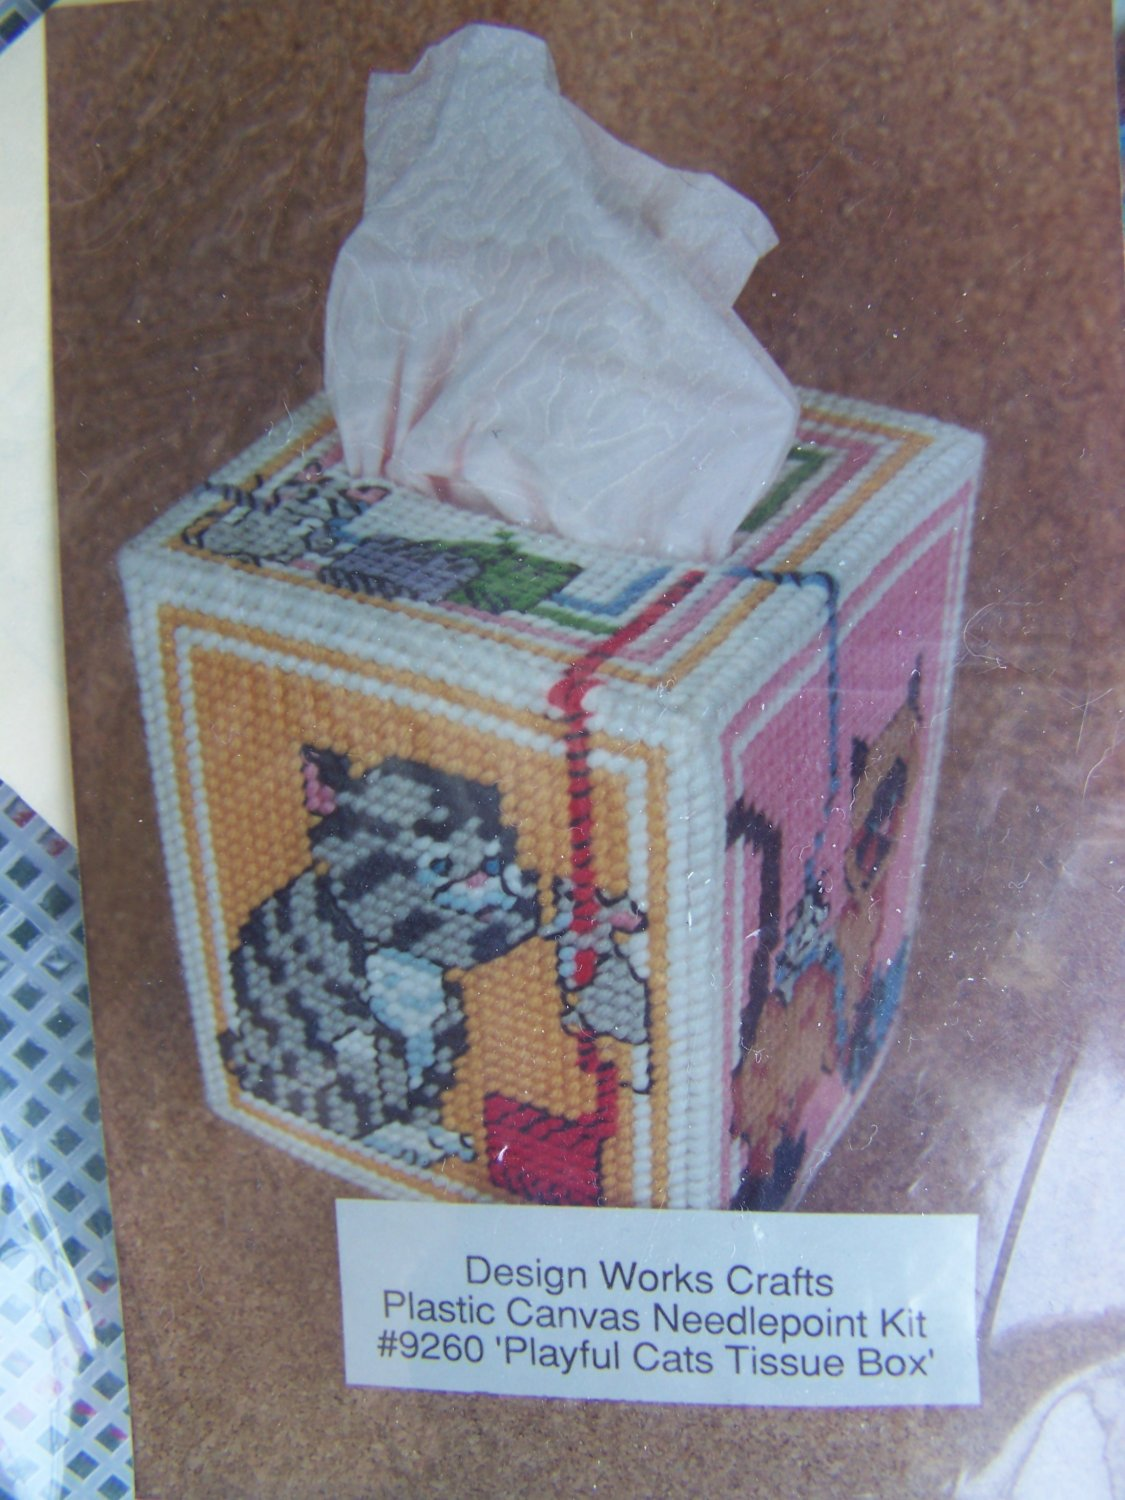 New Playful Cats Tissue Box Plastic Canvas Needlepoint Craft Kit 9260